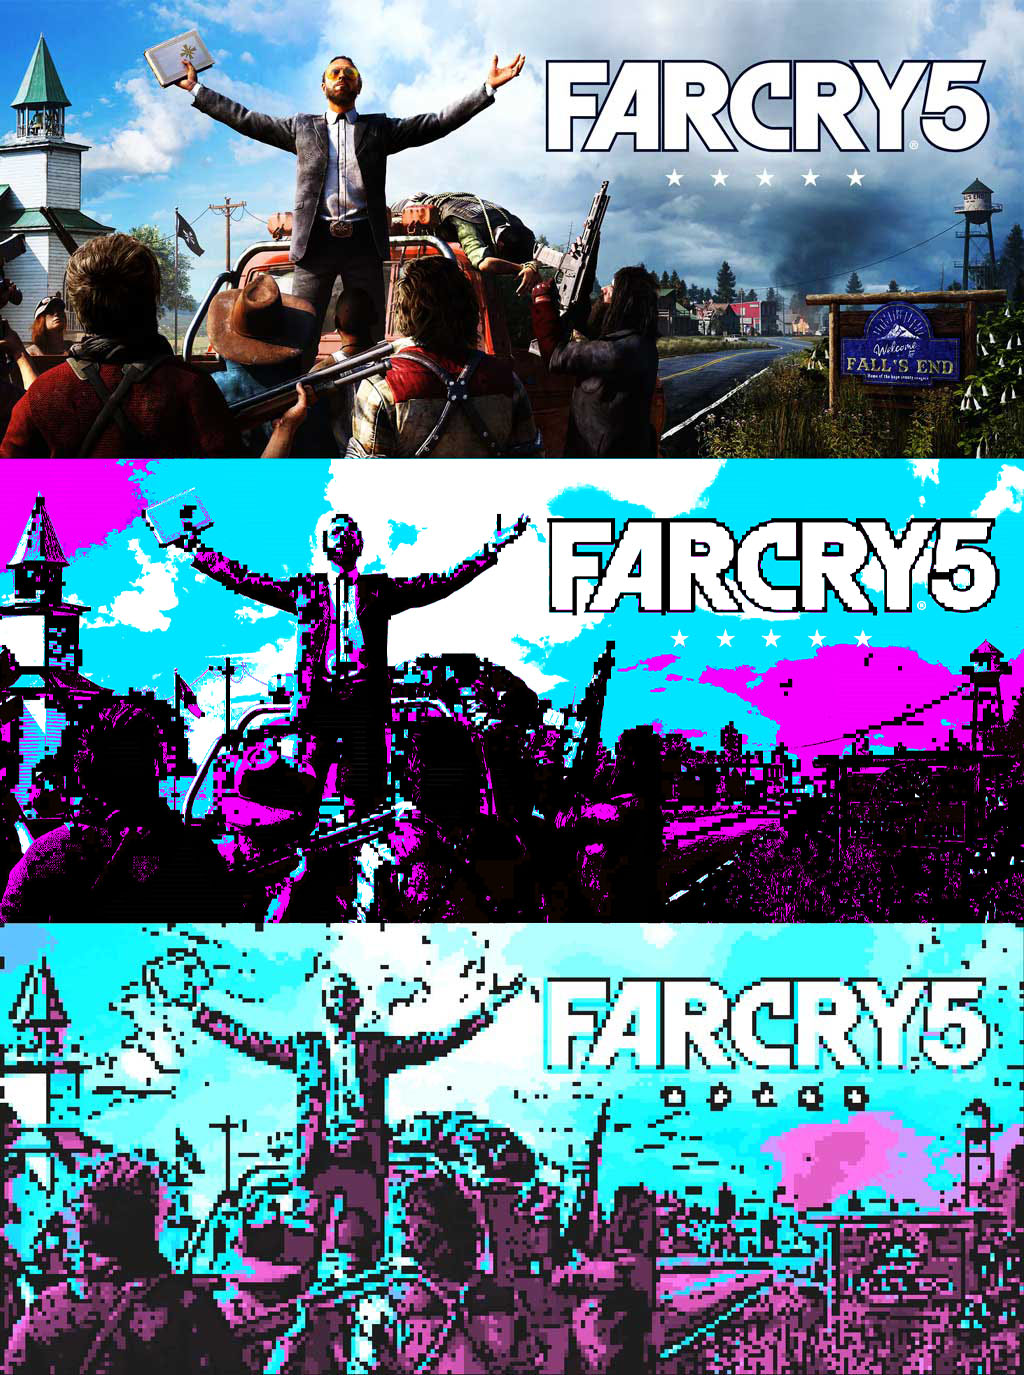 Farcry 5 Pixel Art With CGA Colors